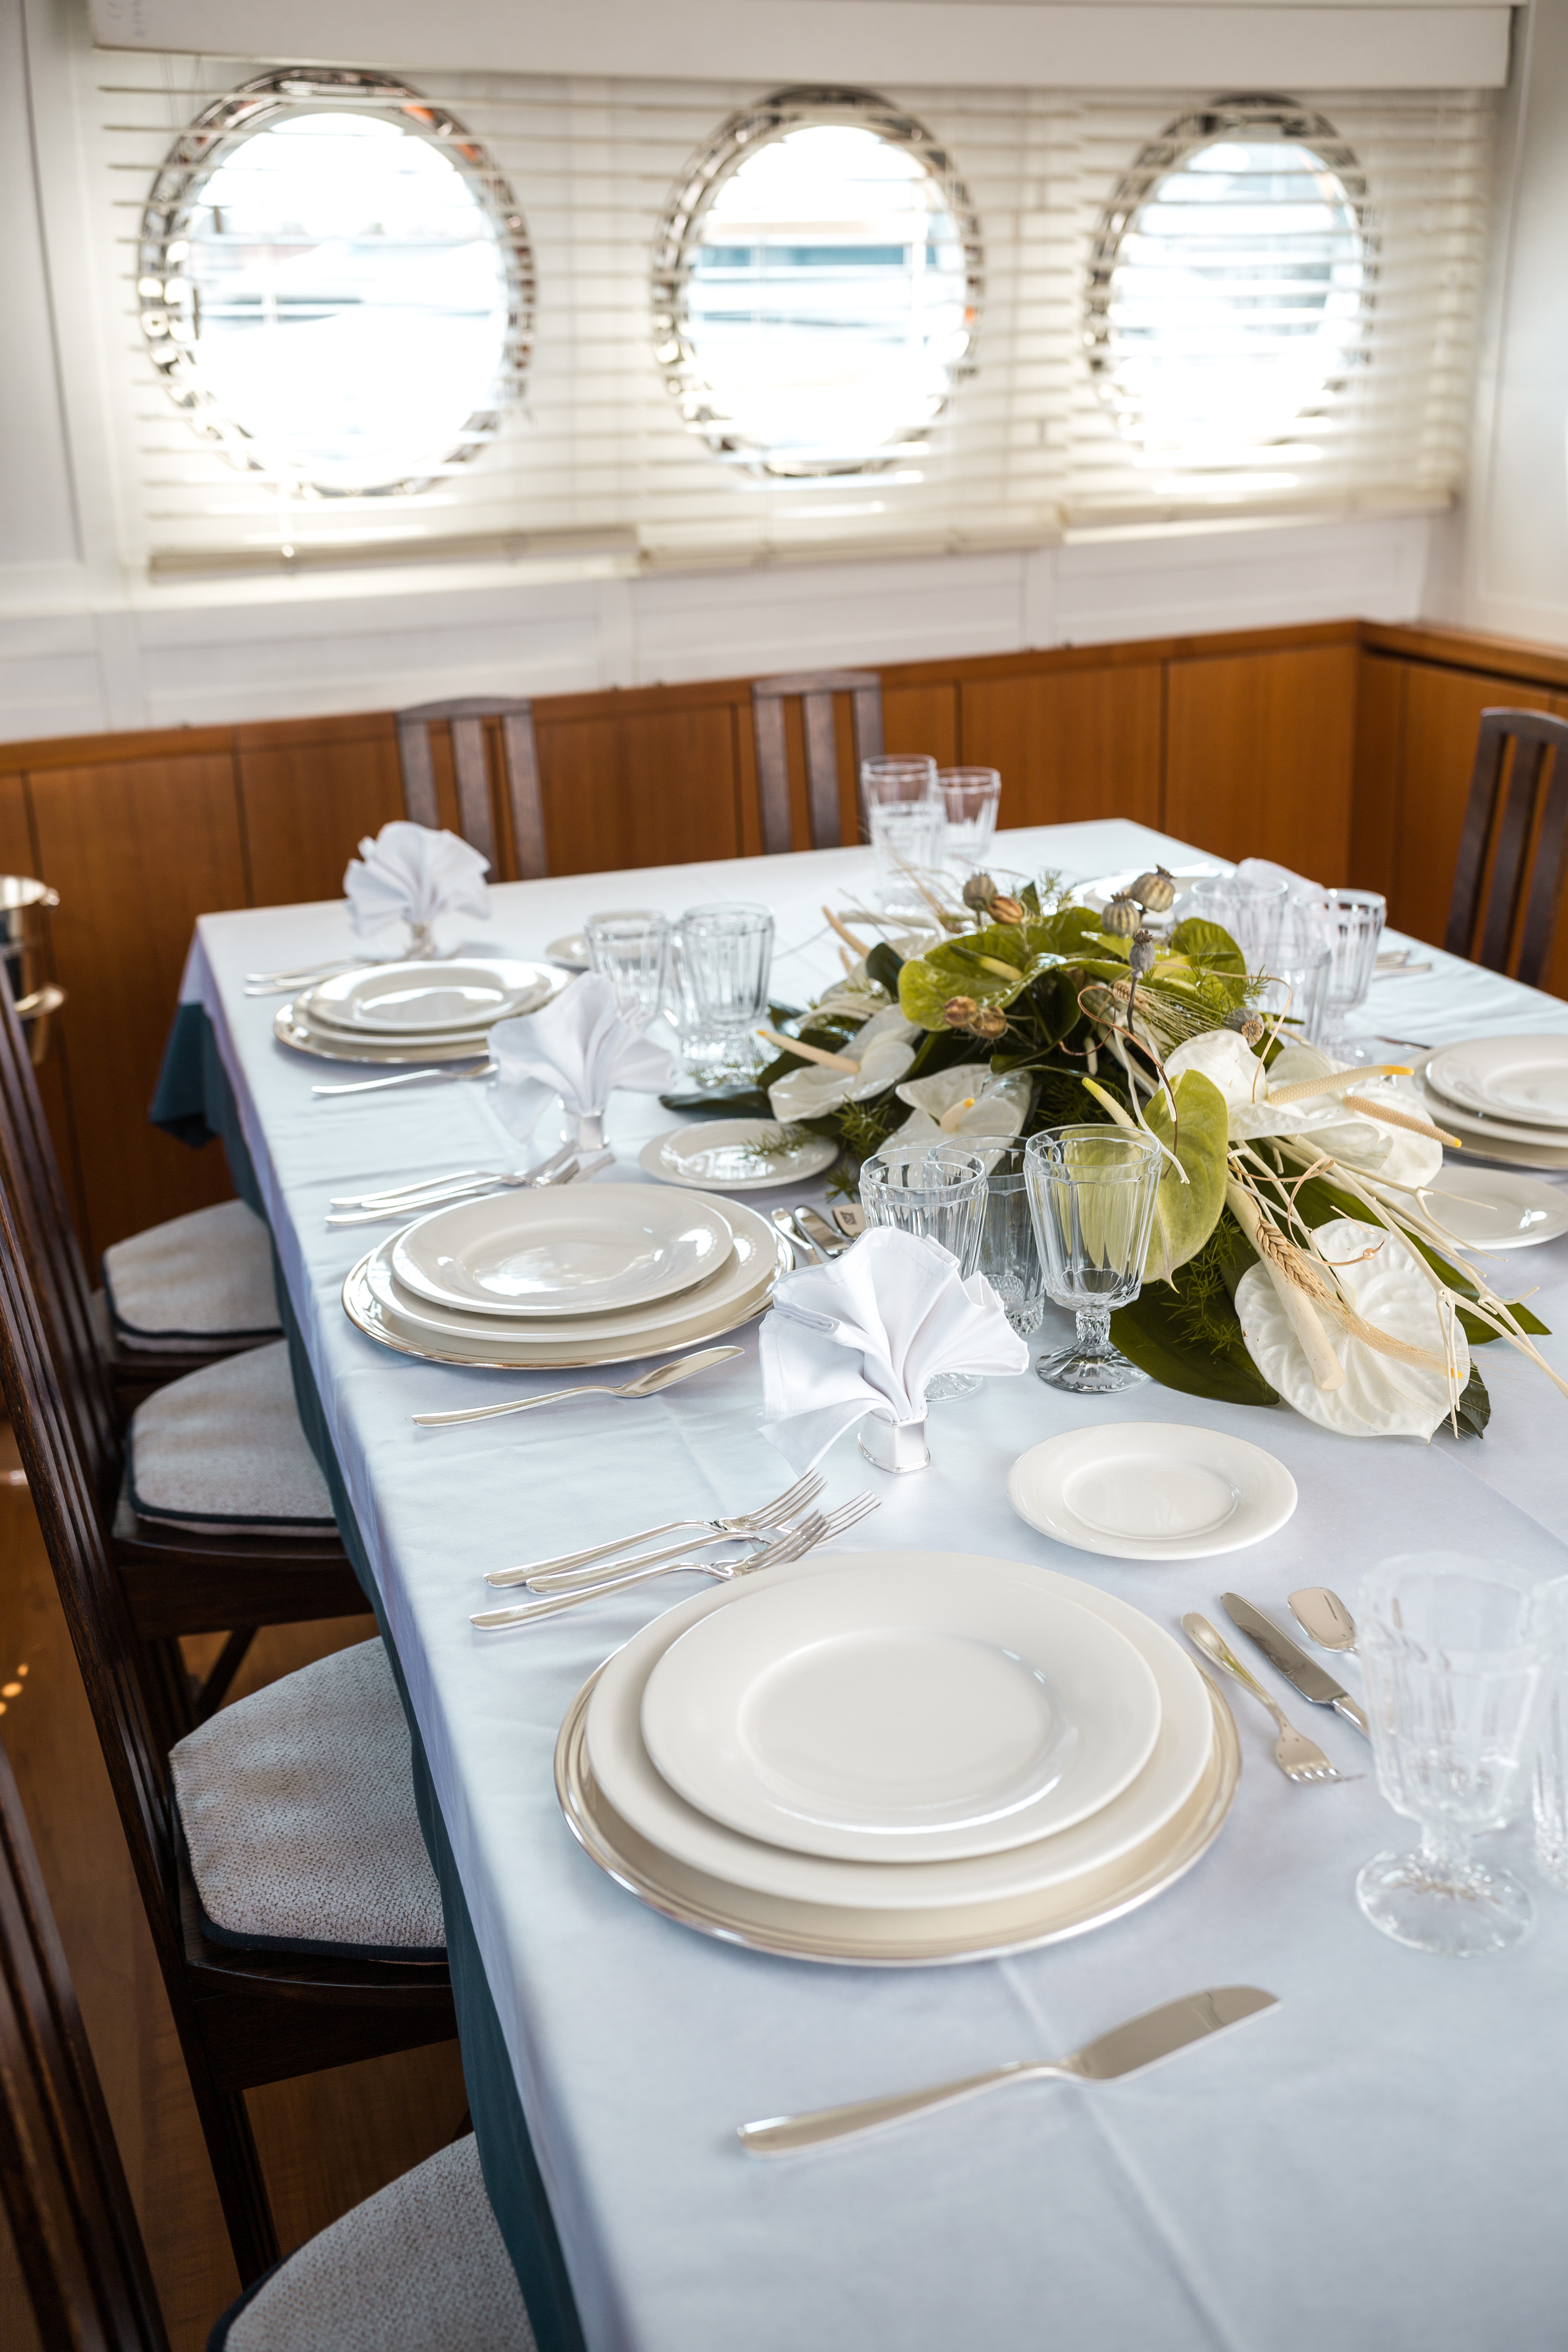 M/Y PAOLUCCI yacht for charter luxury dining room